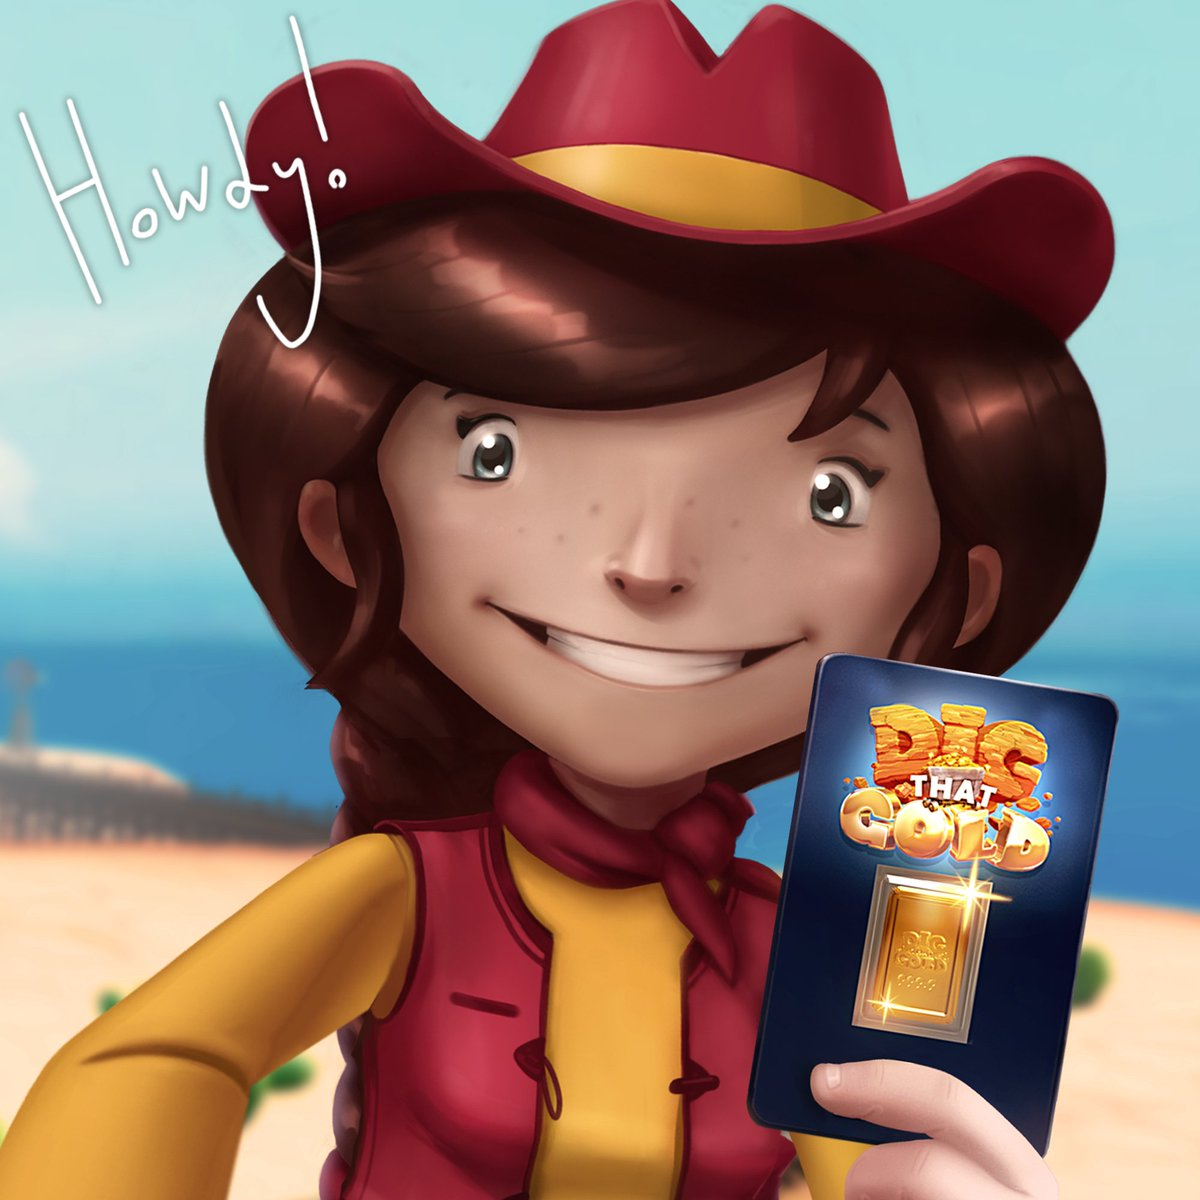 Say hello to Dixie and her very own 24K Gold Bar! It's #WorldHelloDay! However, she would like y'all to know that most Real Gold Miner's say Howdy partner… #HowdyDay?